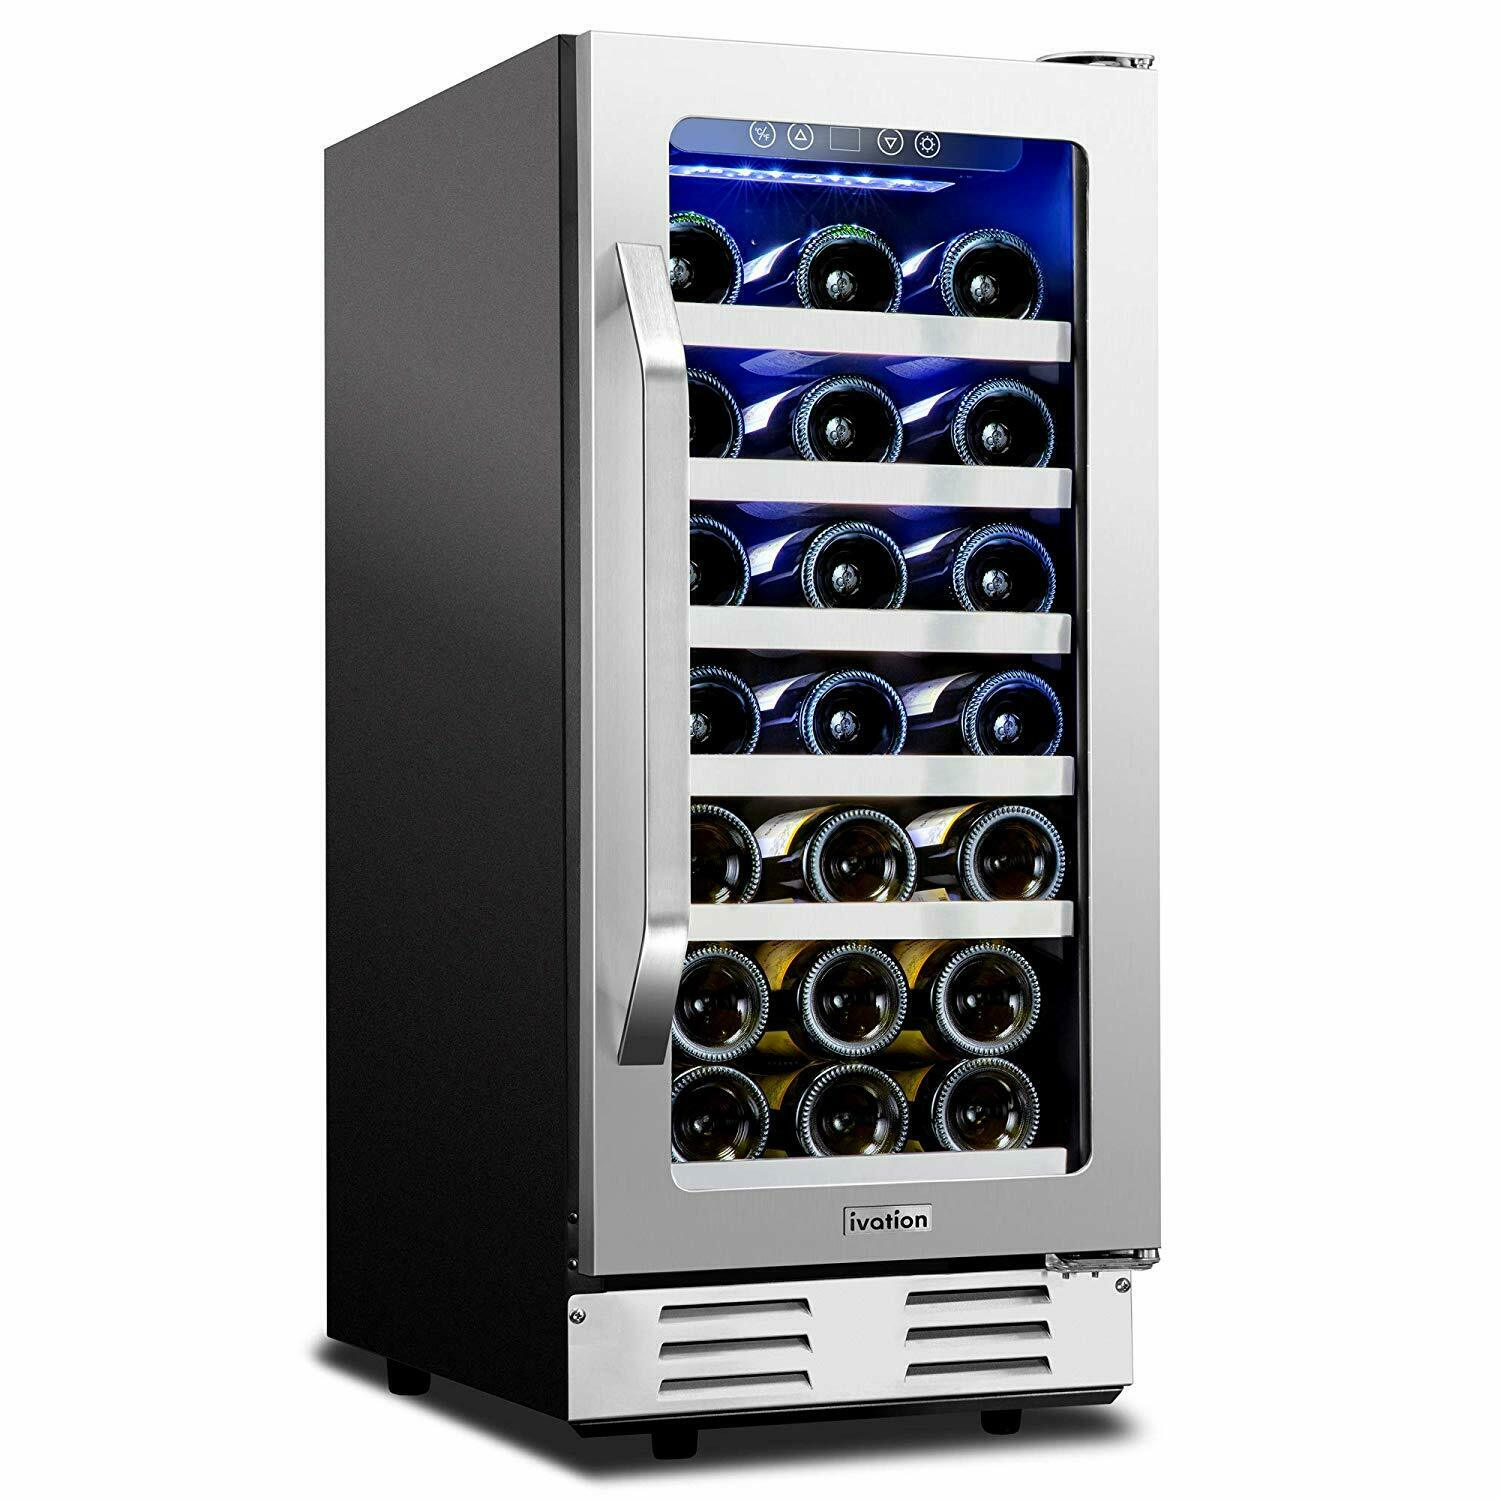 Edgestar Bwr301bl 30 Bottle Built In Single Zone Wine Cooler 15 For Sale Online Ebay